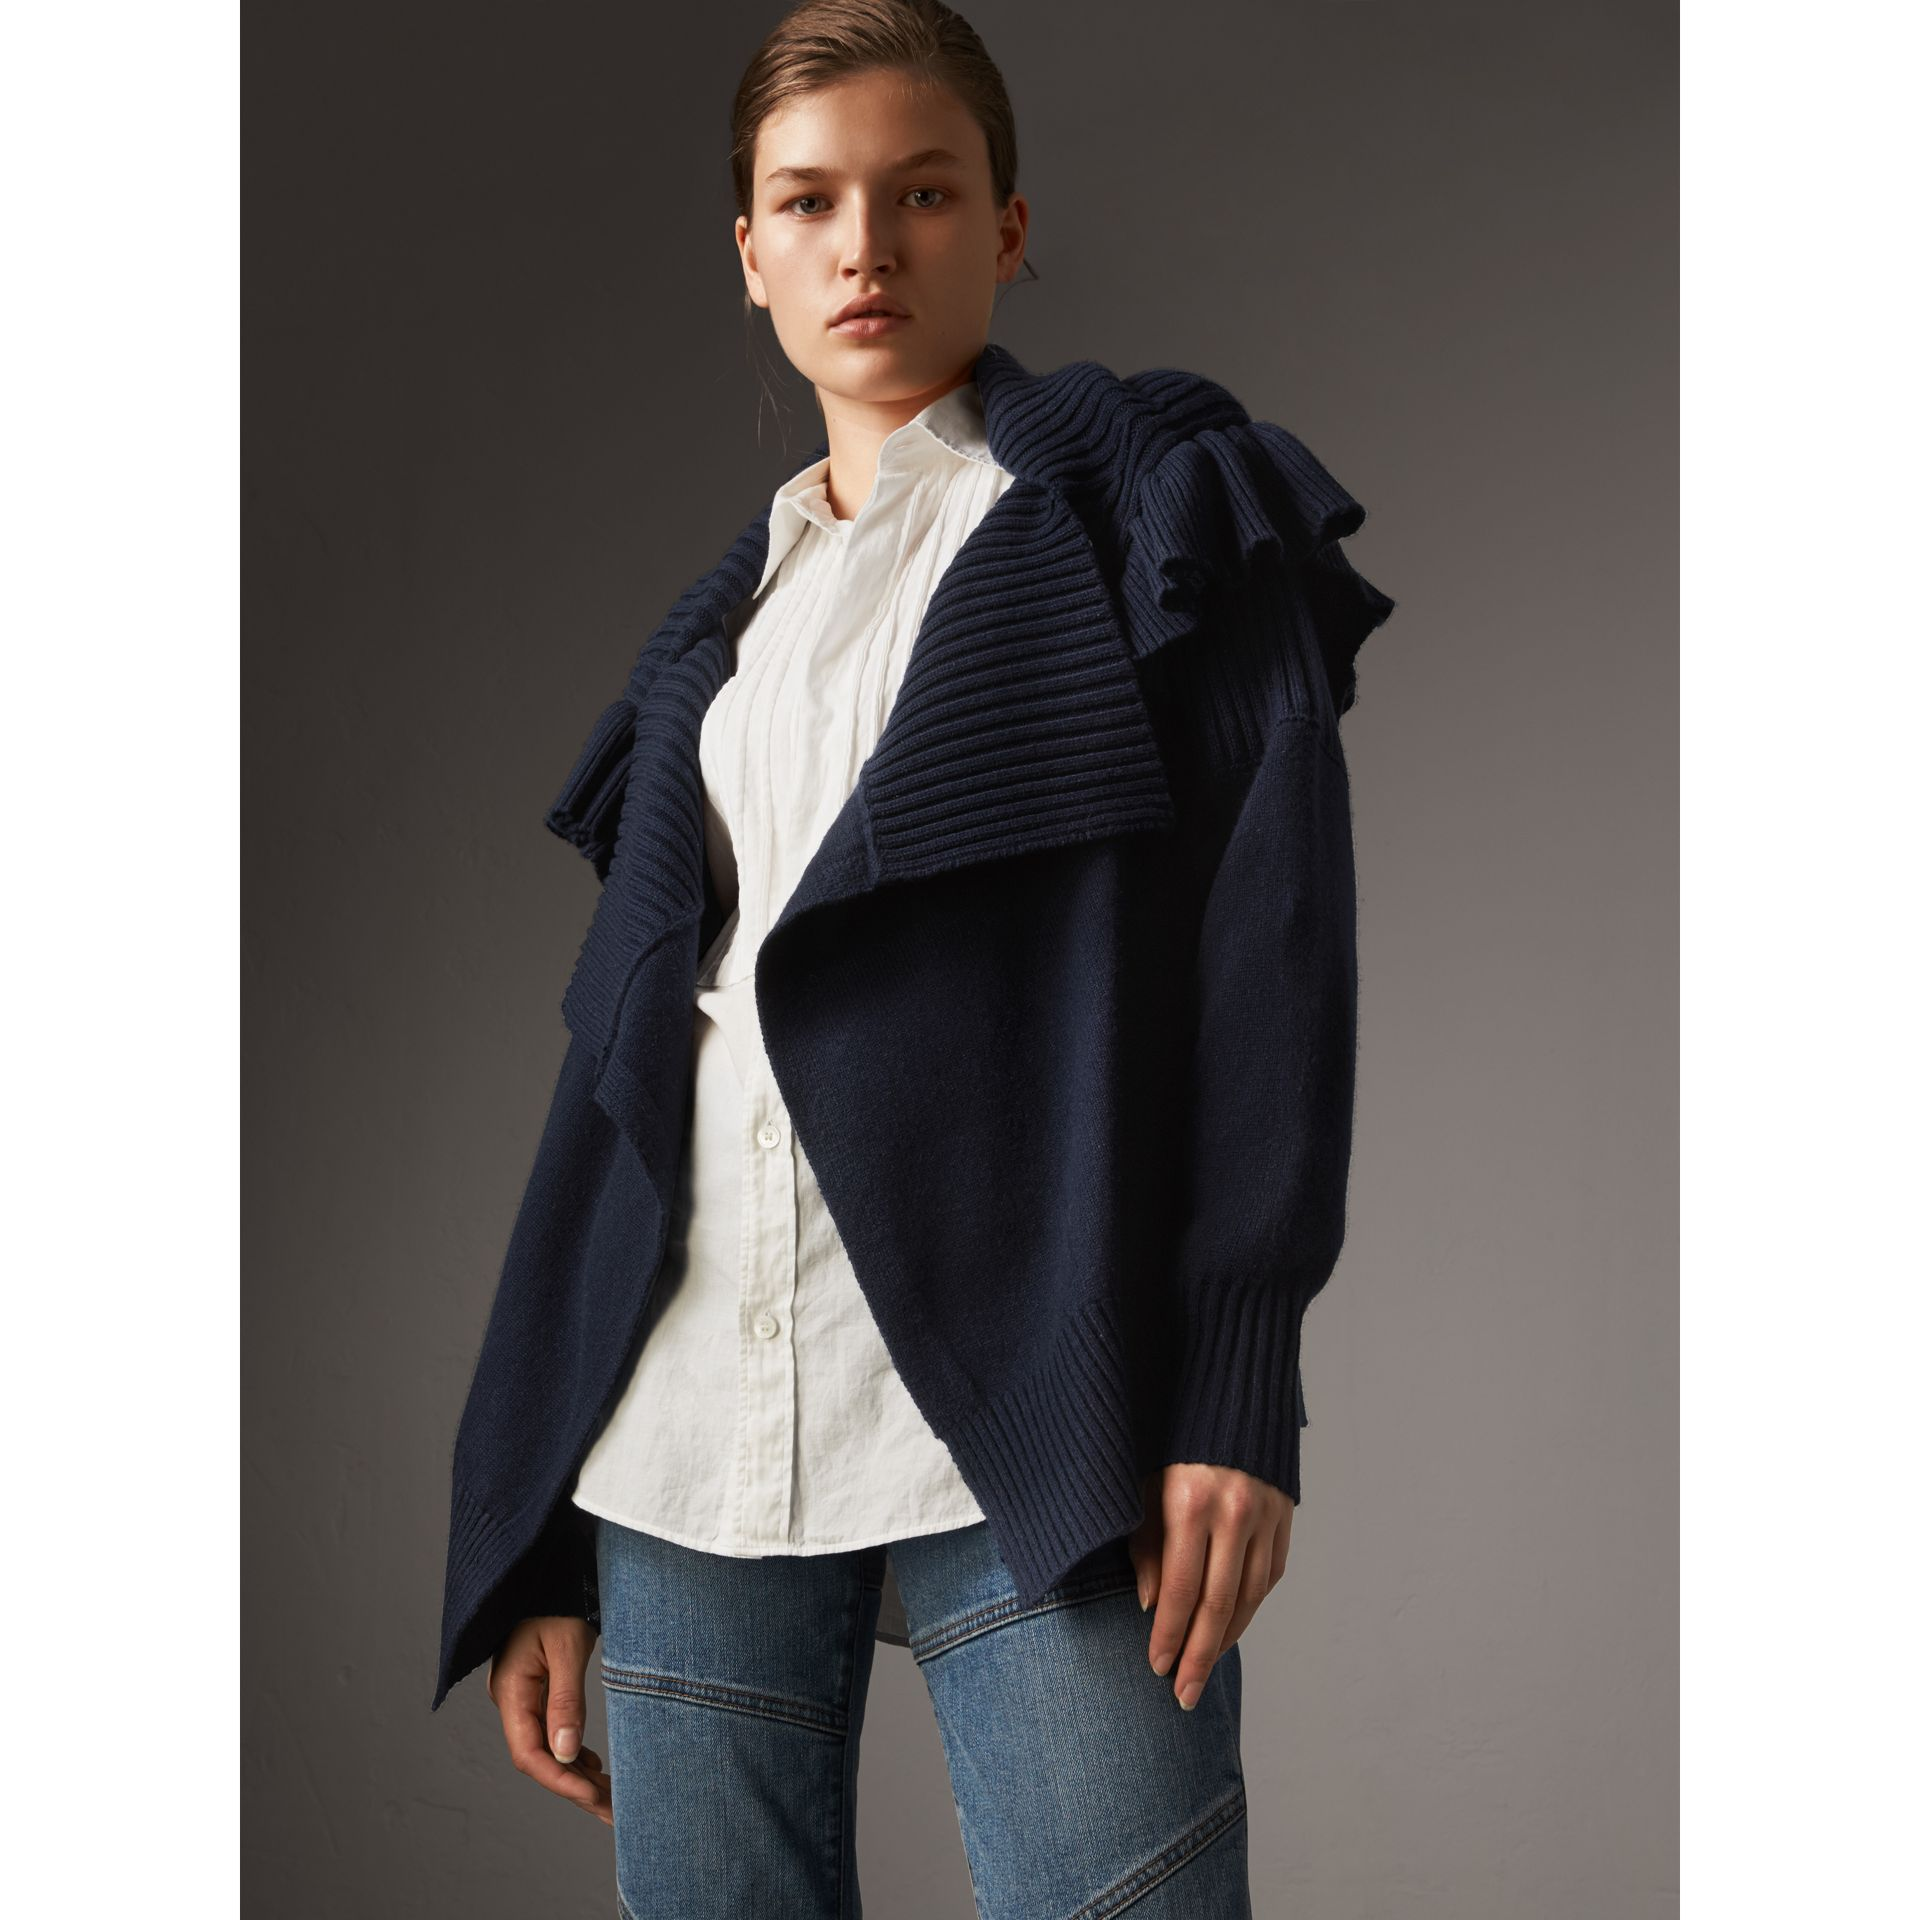 Ruffle Detail Wool Cashmere Cardigan in Navy - Women | Burberry - gallery image 1